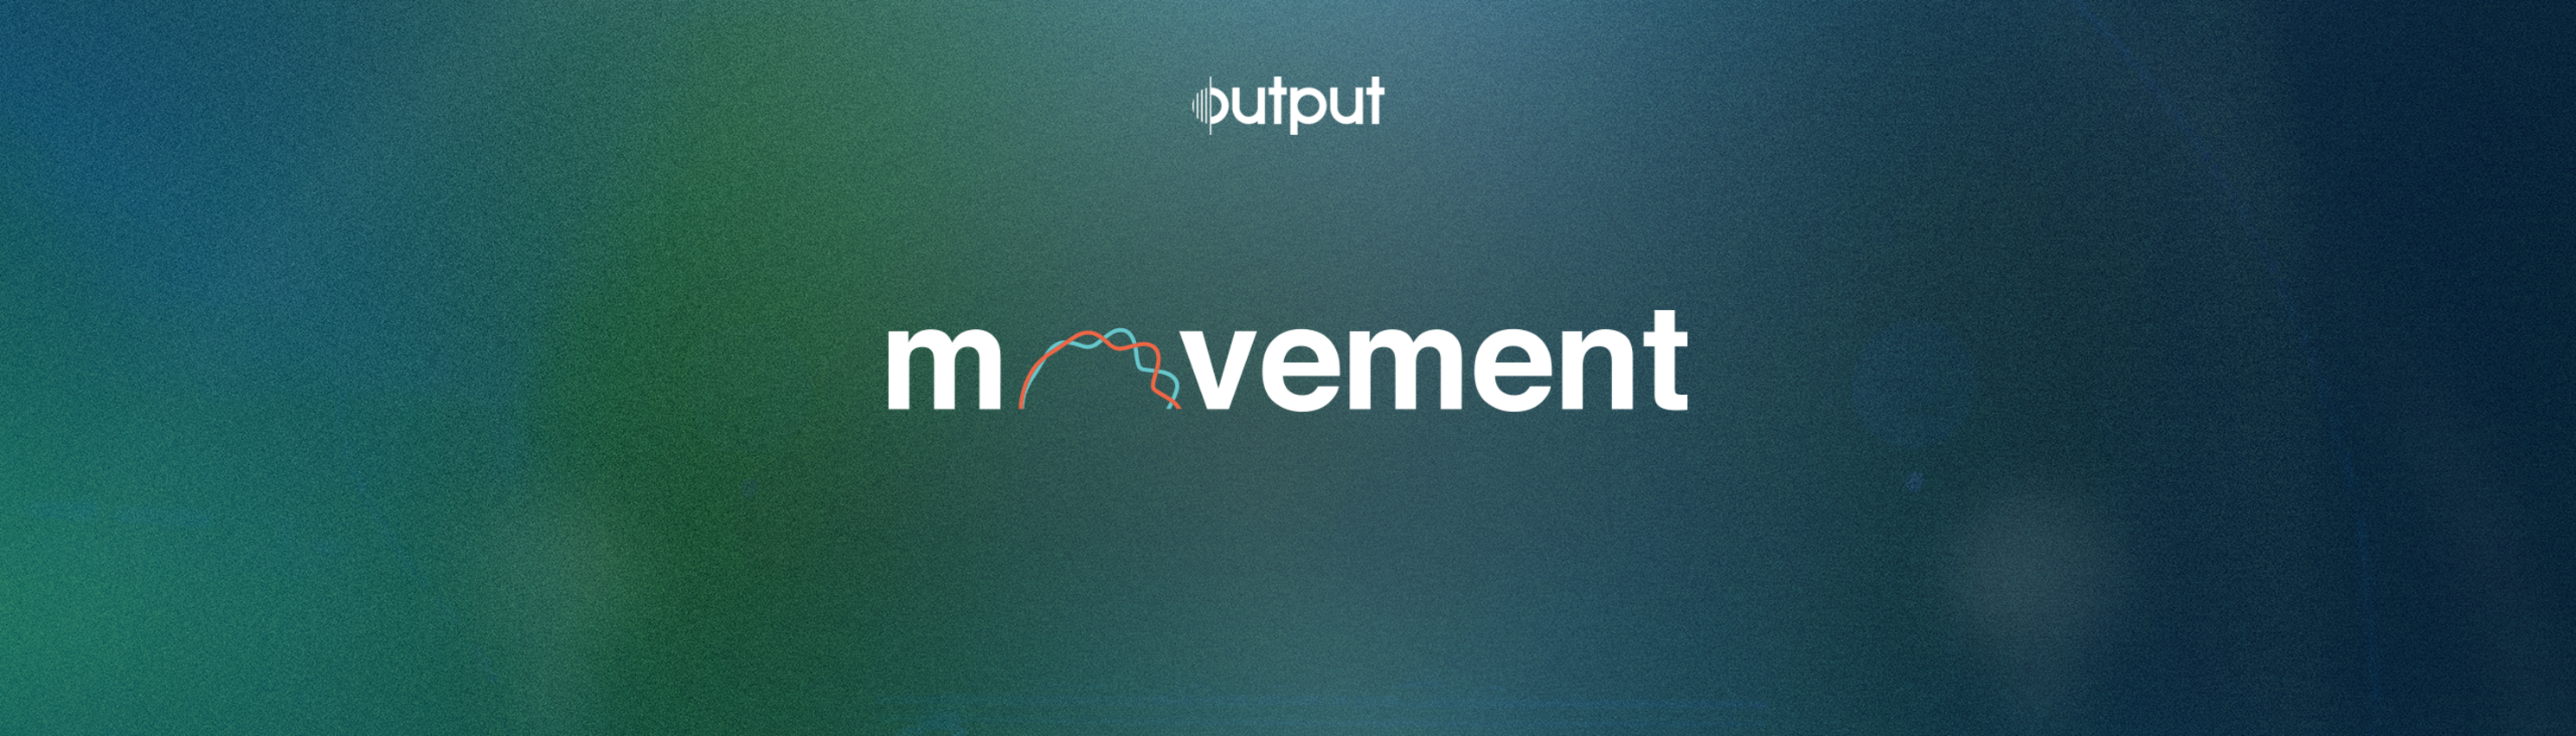 Movement Header